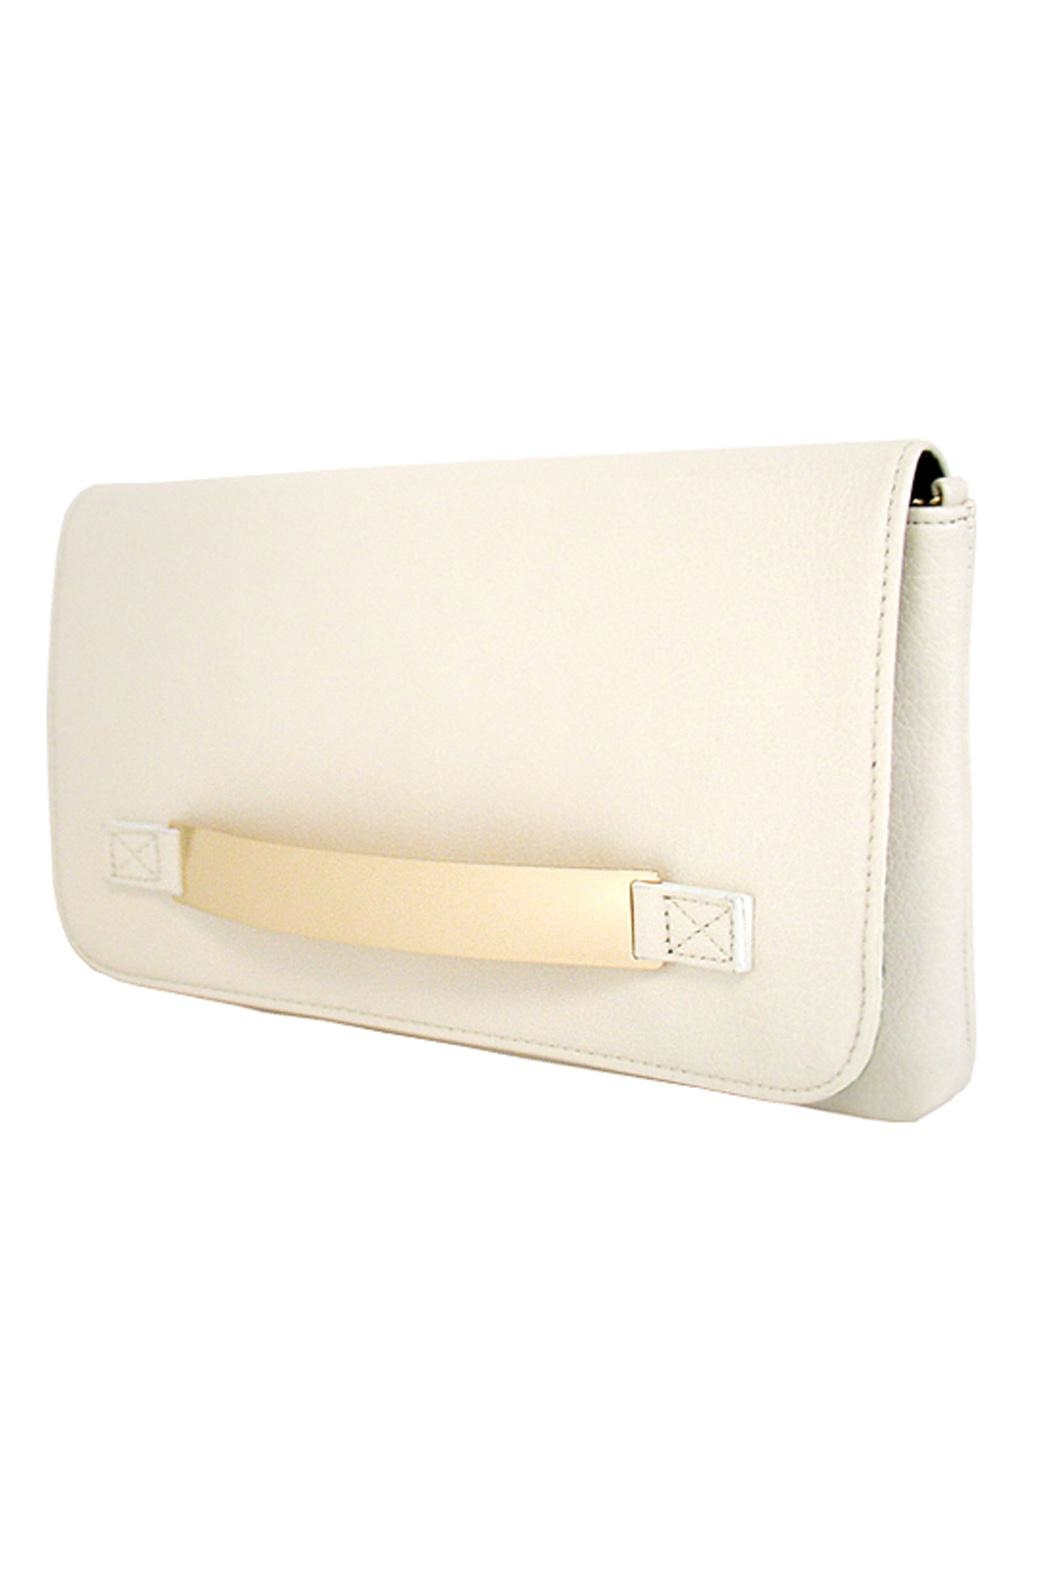 Wild Lilies Jewelry  Ivory Envelope Clutch - Front Full Image